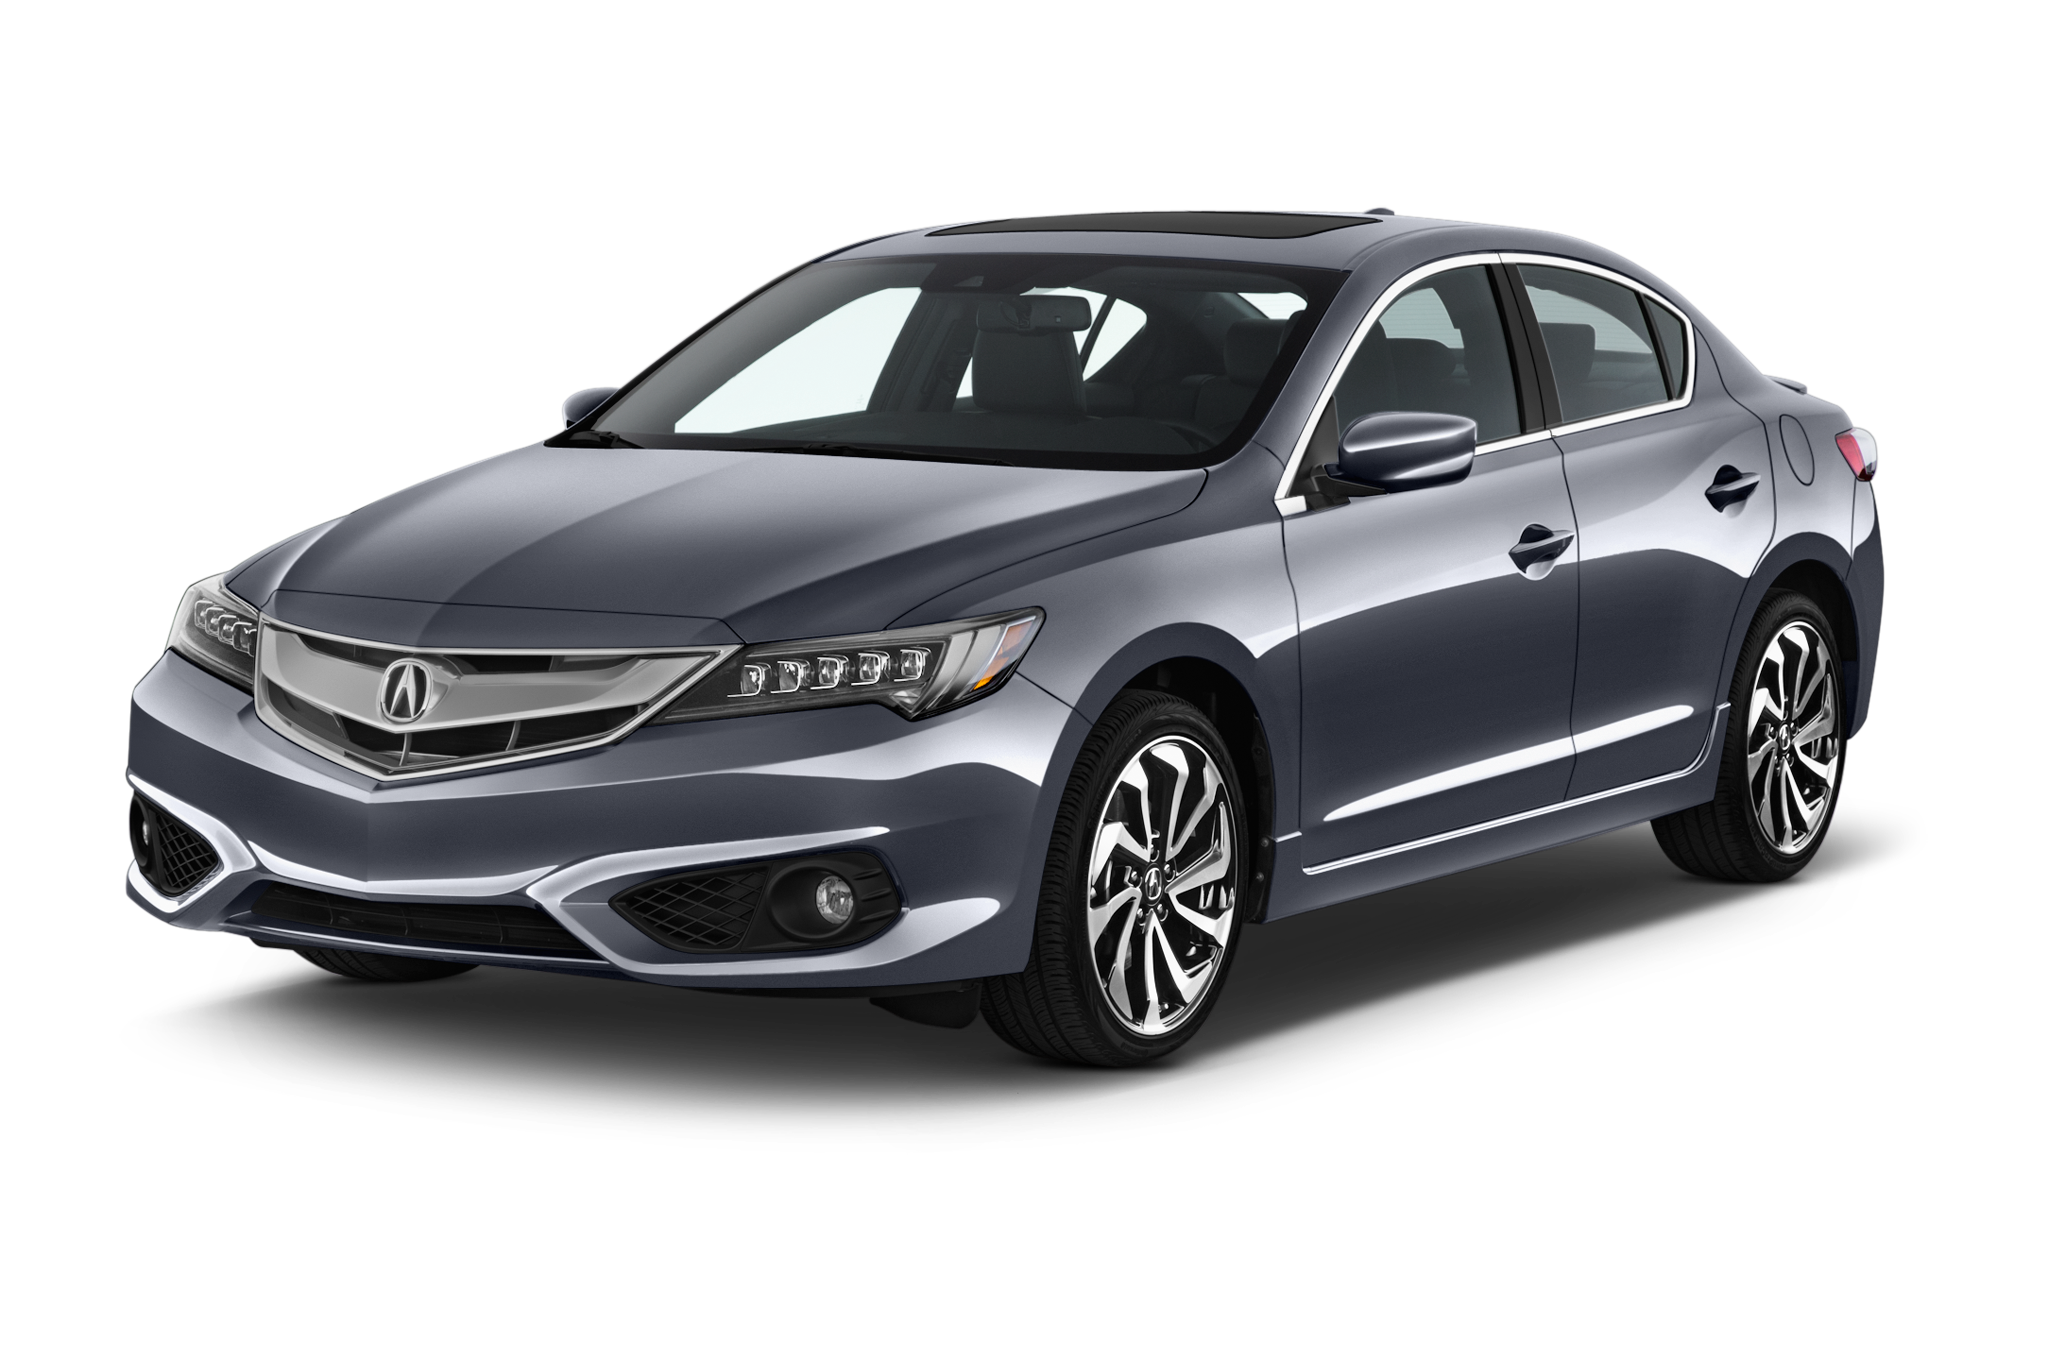 2018 acura ilx price and rumor as the lowest model via acura 2018 acura ilx will be launched with the excellent quality luxury and luxury for t